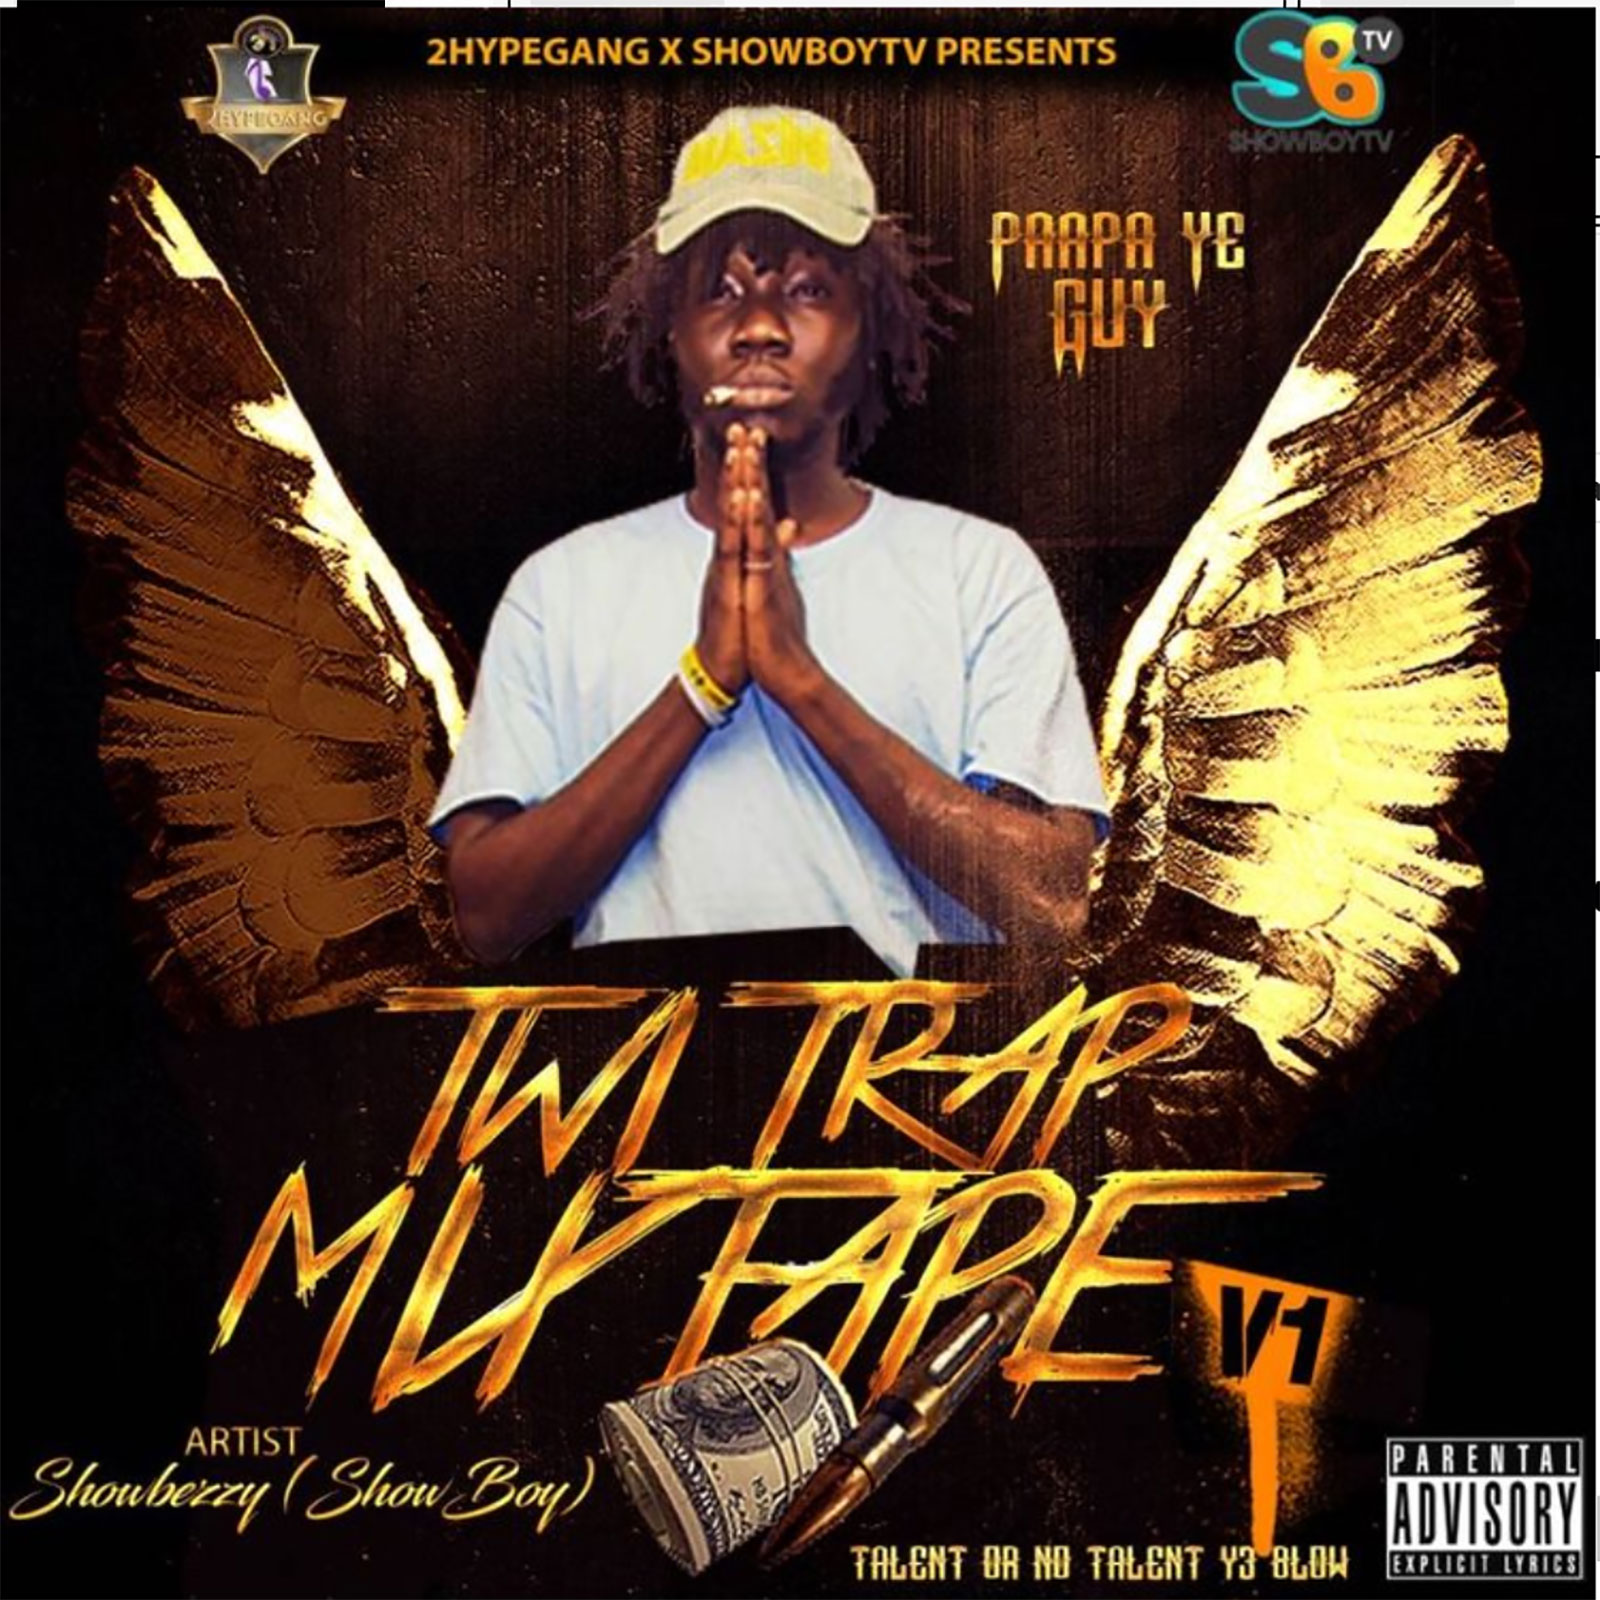 Twi Trap Mixtape Vol. 1 by Showboy (Paapa Ye Guy)